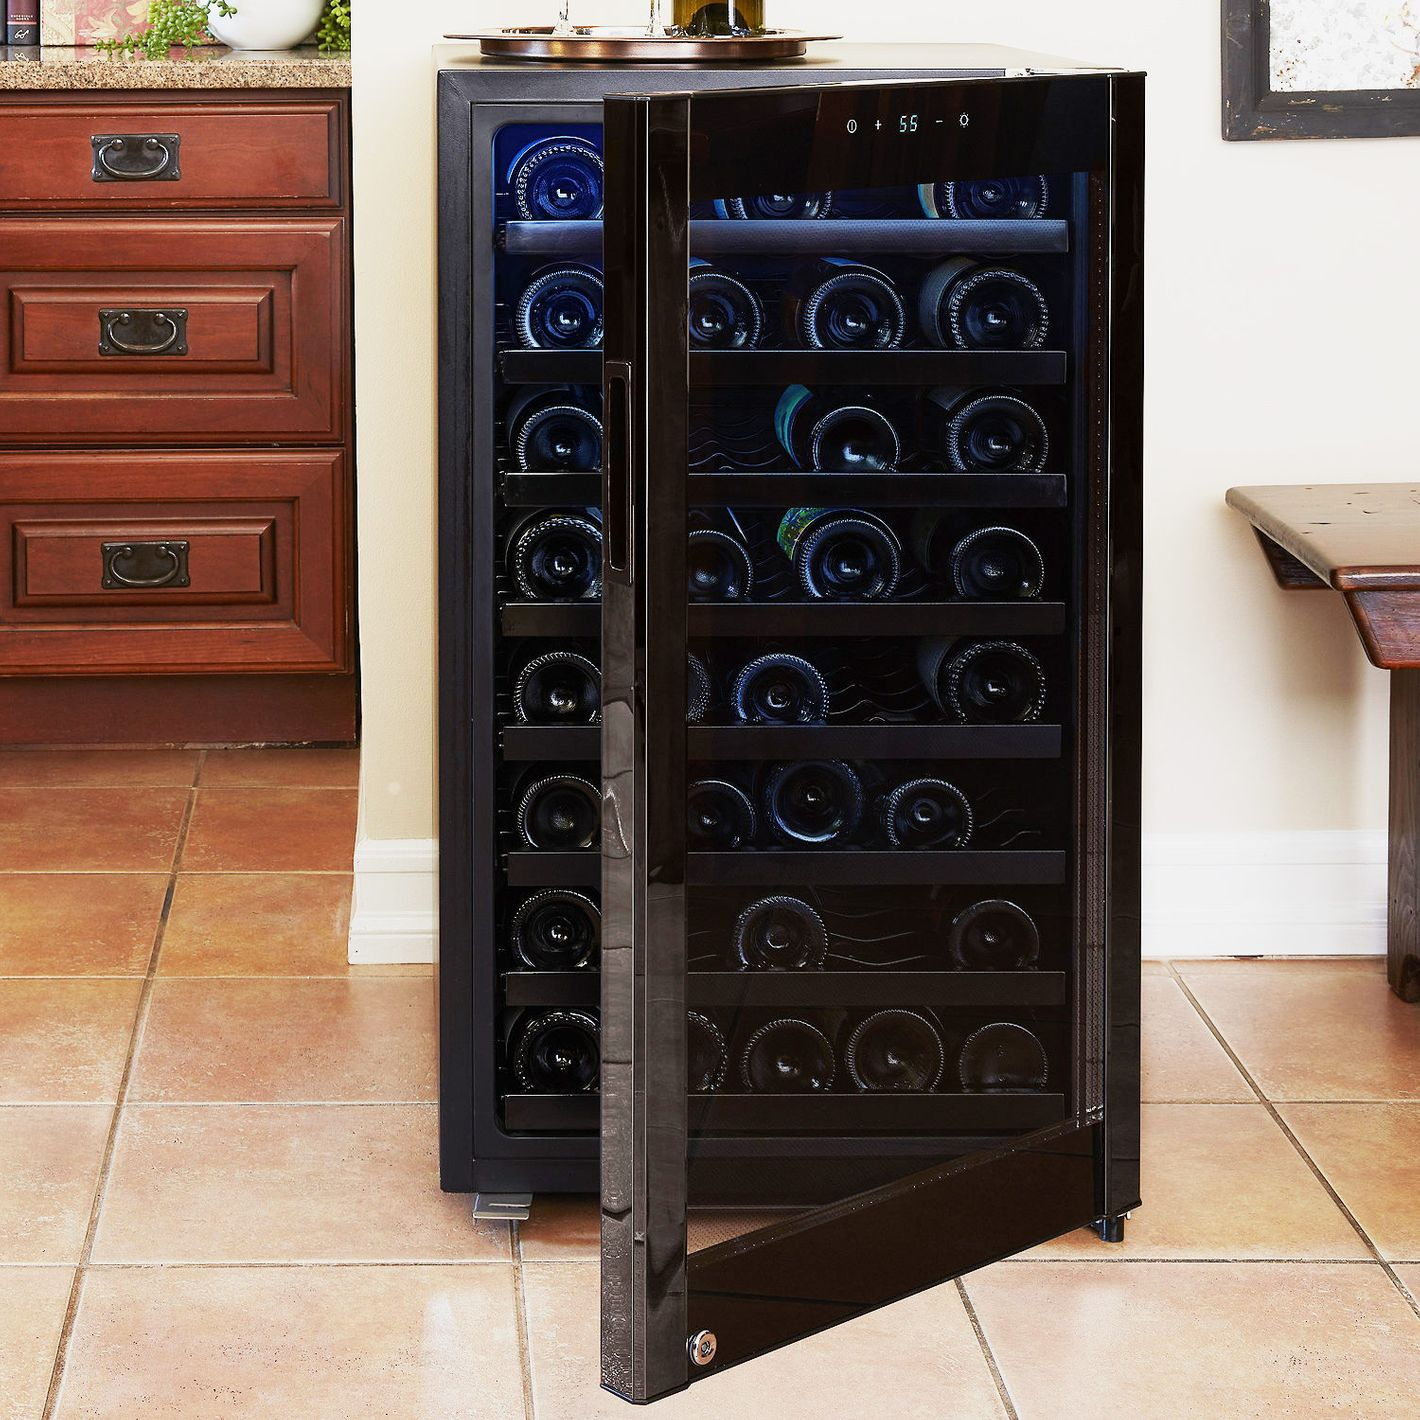 52-Bottle Evolution Series Wine Refrigerator